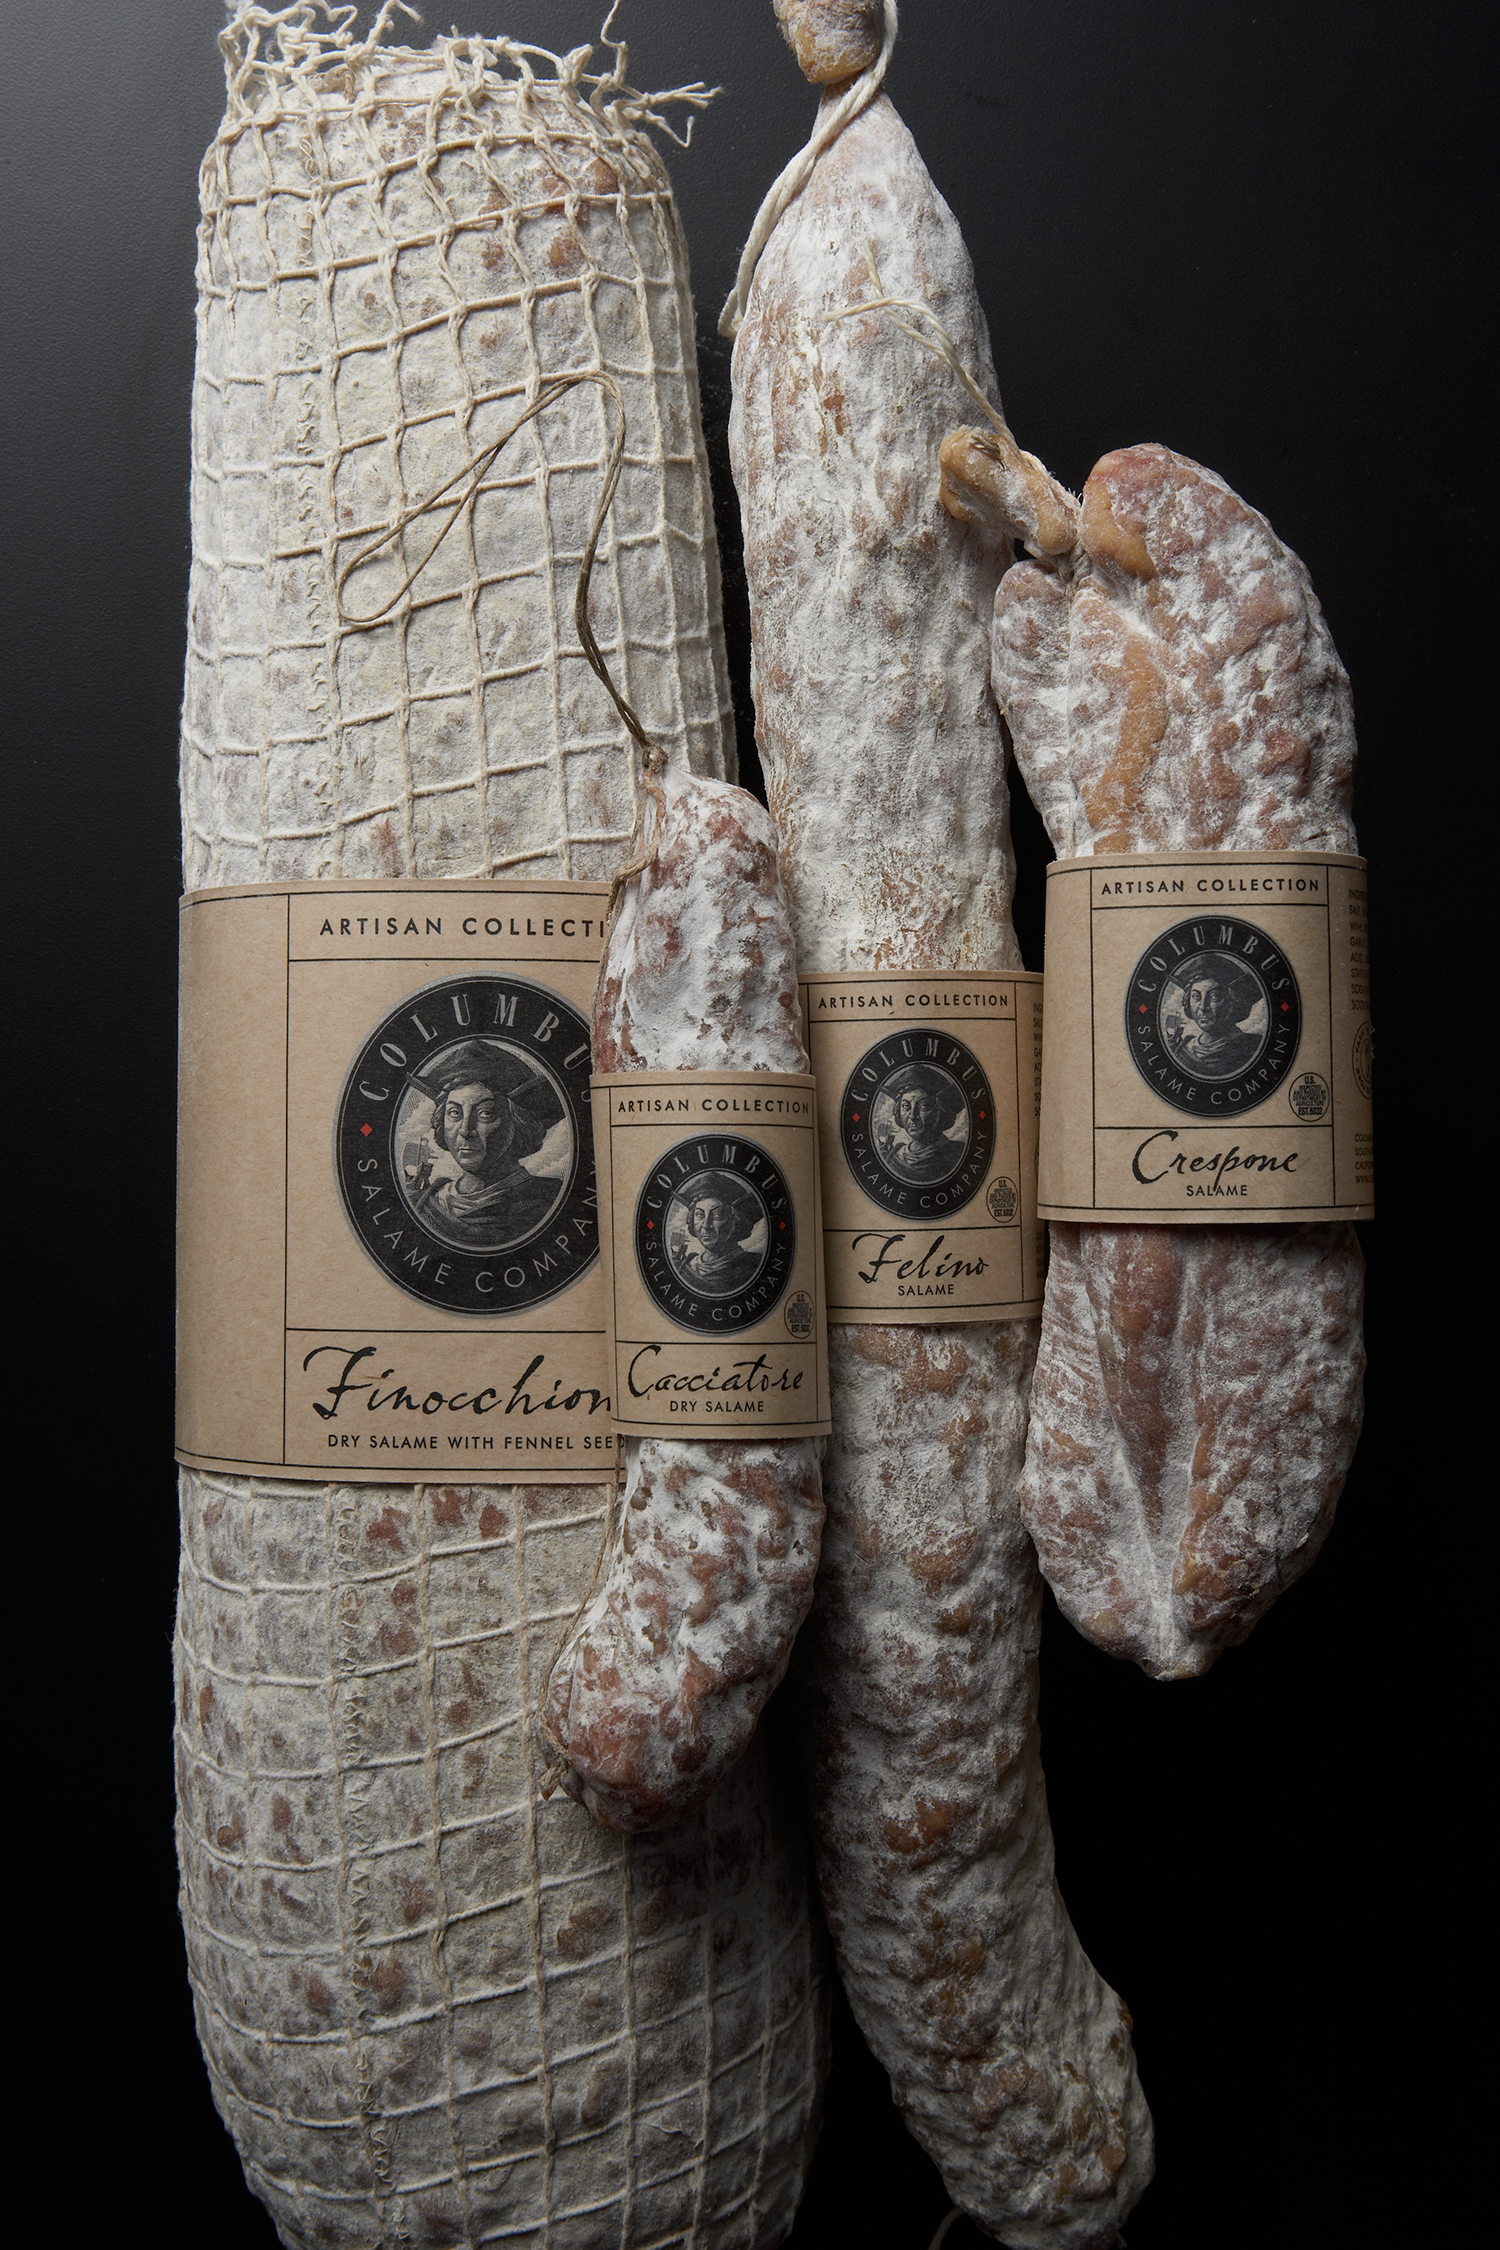 A special deli wrapper was made for Columbus's Artisan Salame.